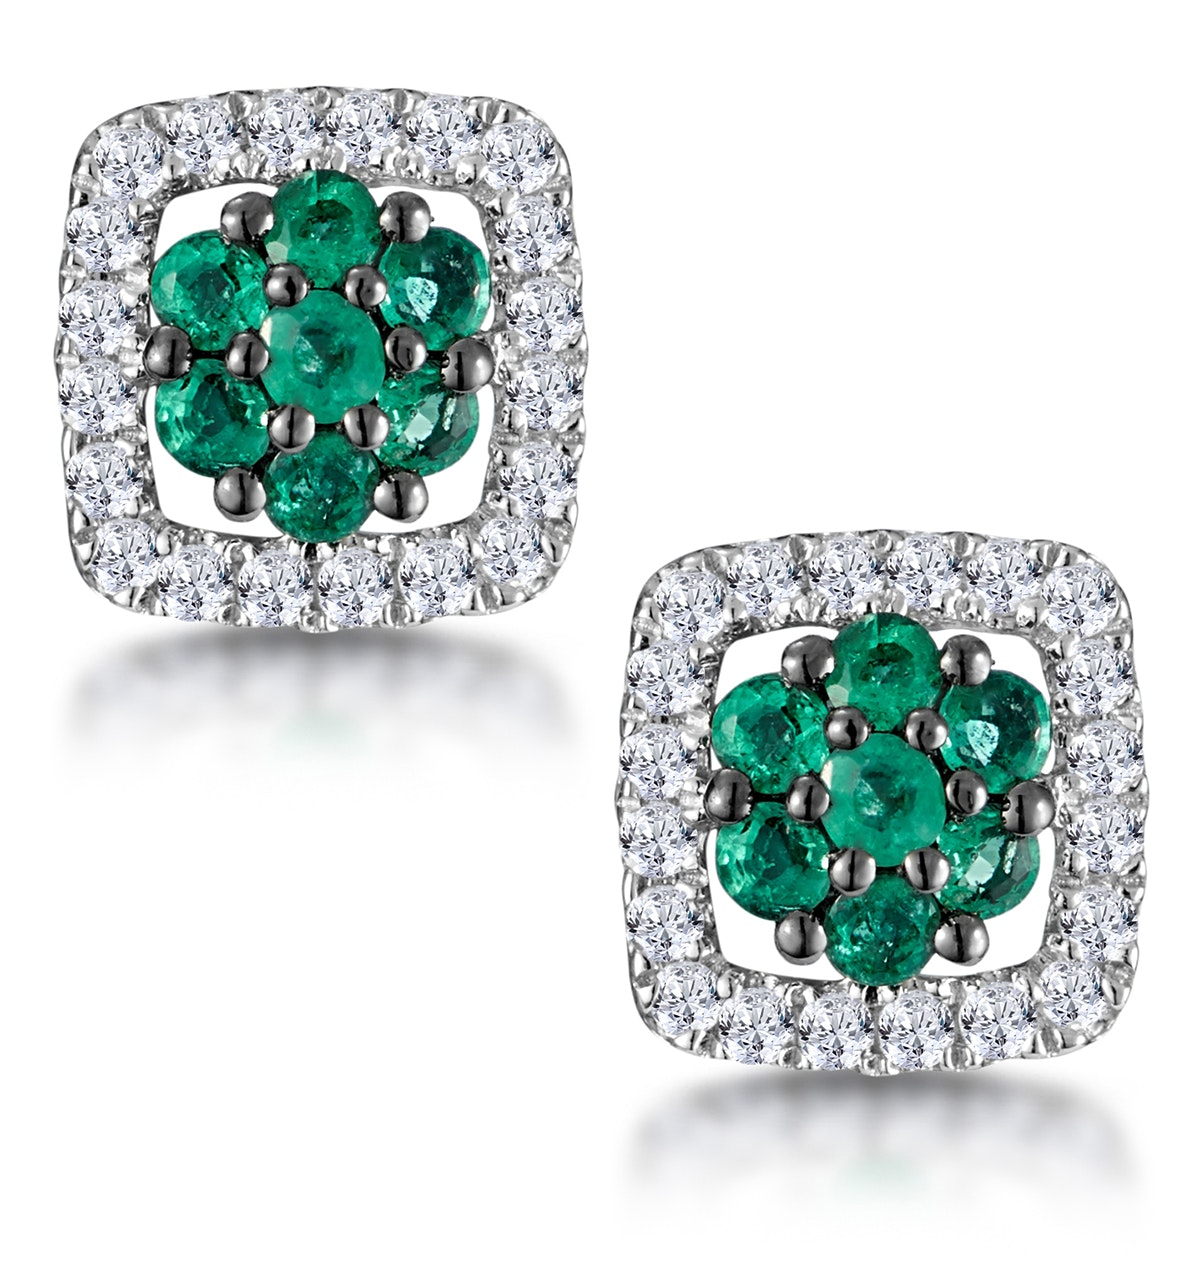 0.23ct Emerald and Diamond Stellato Earrings in 9K White Gold